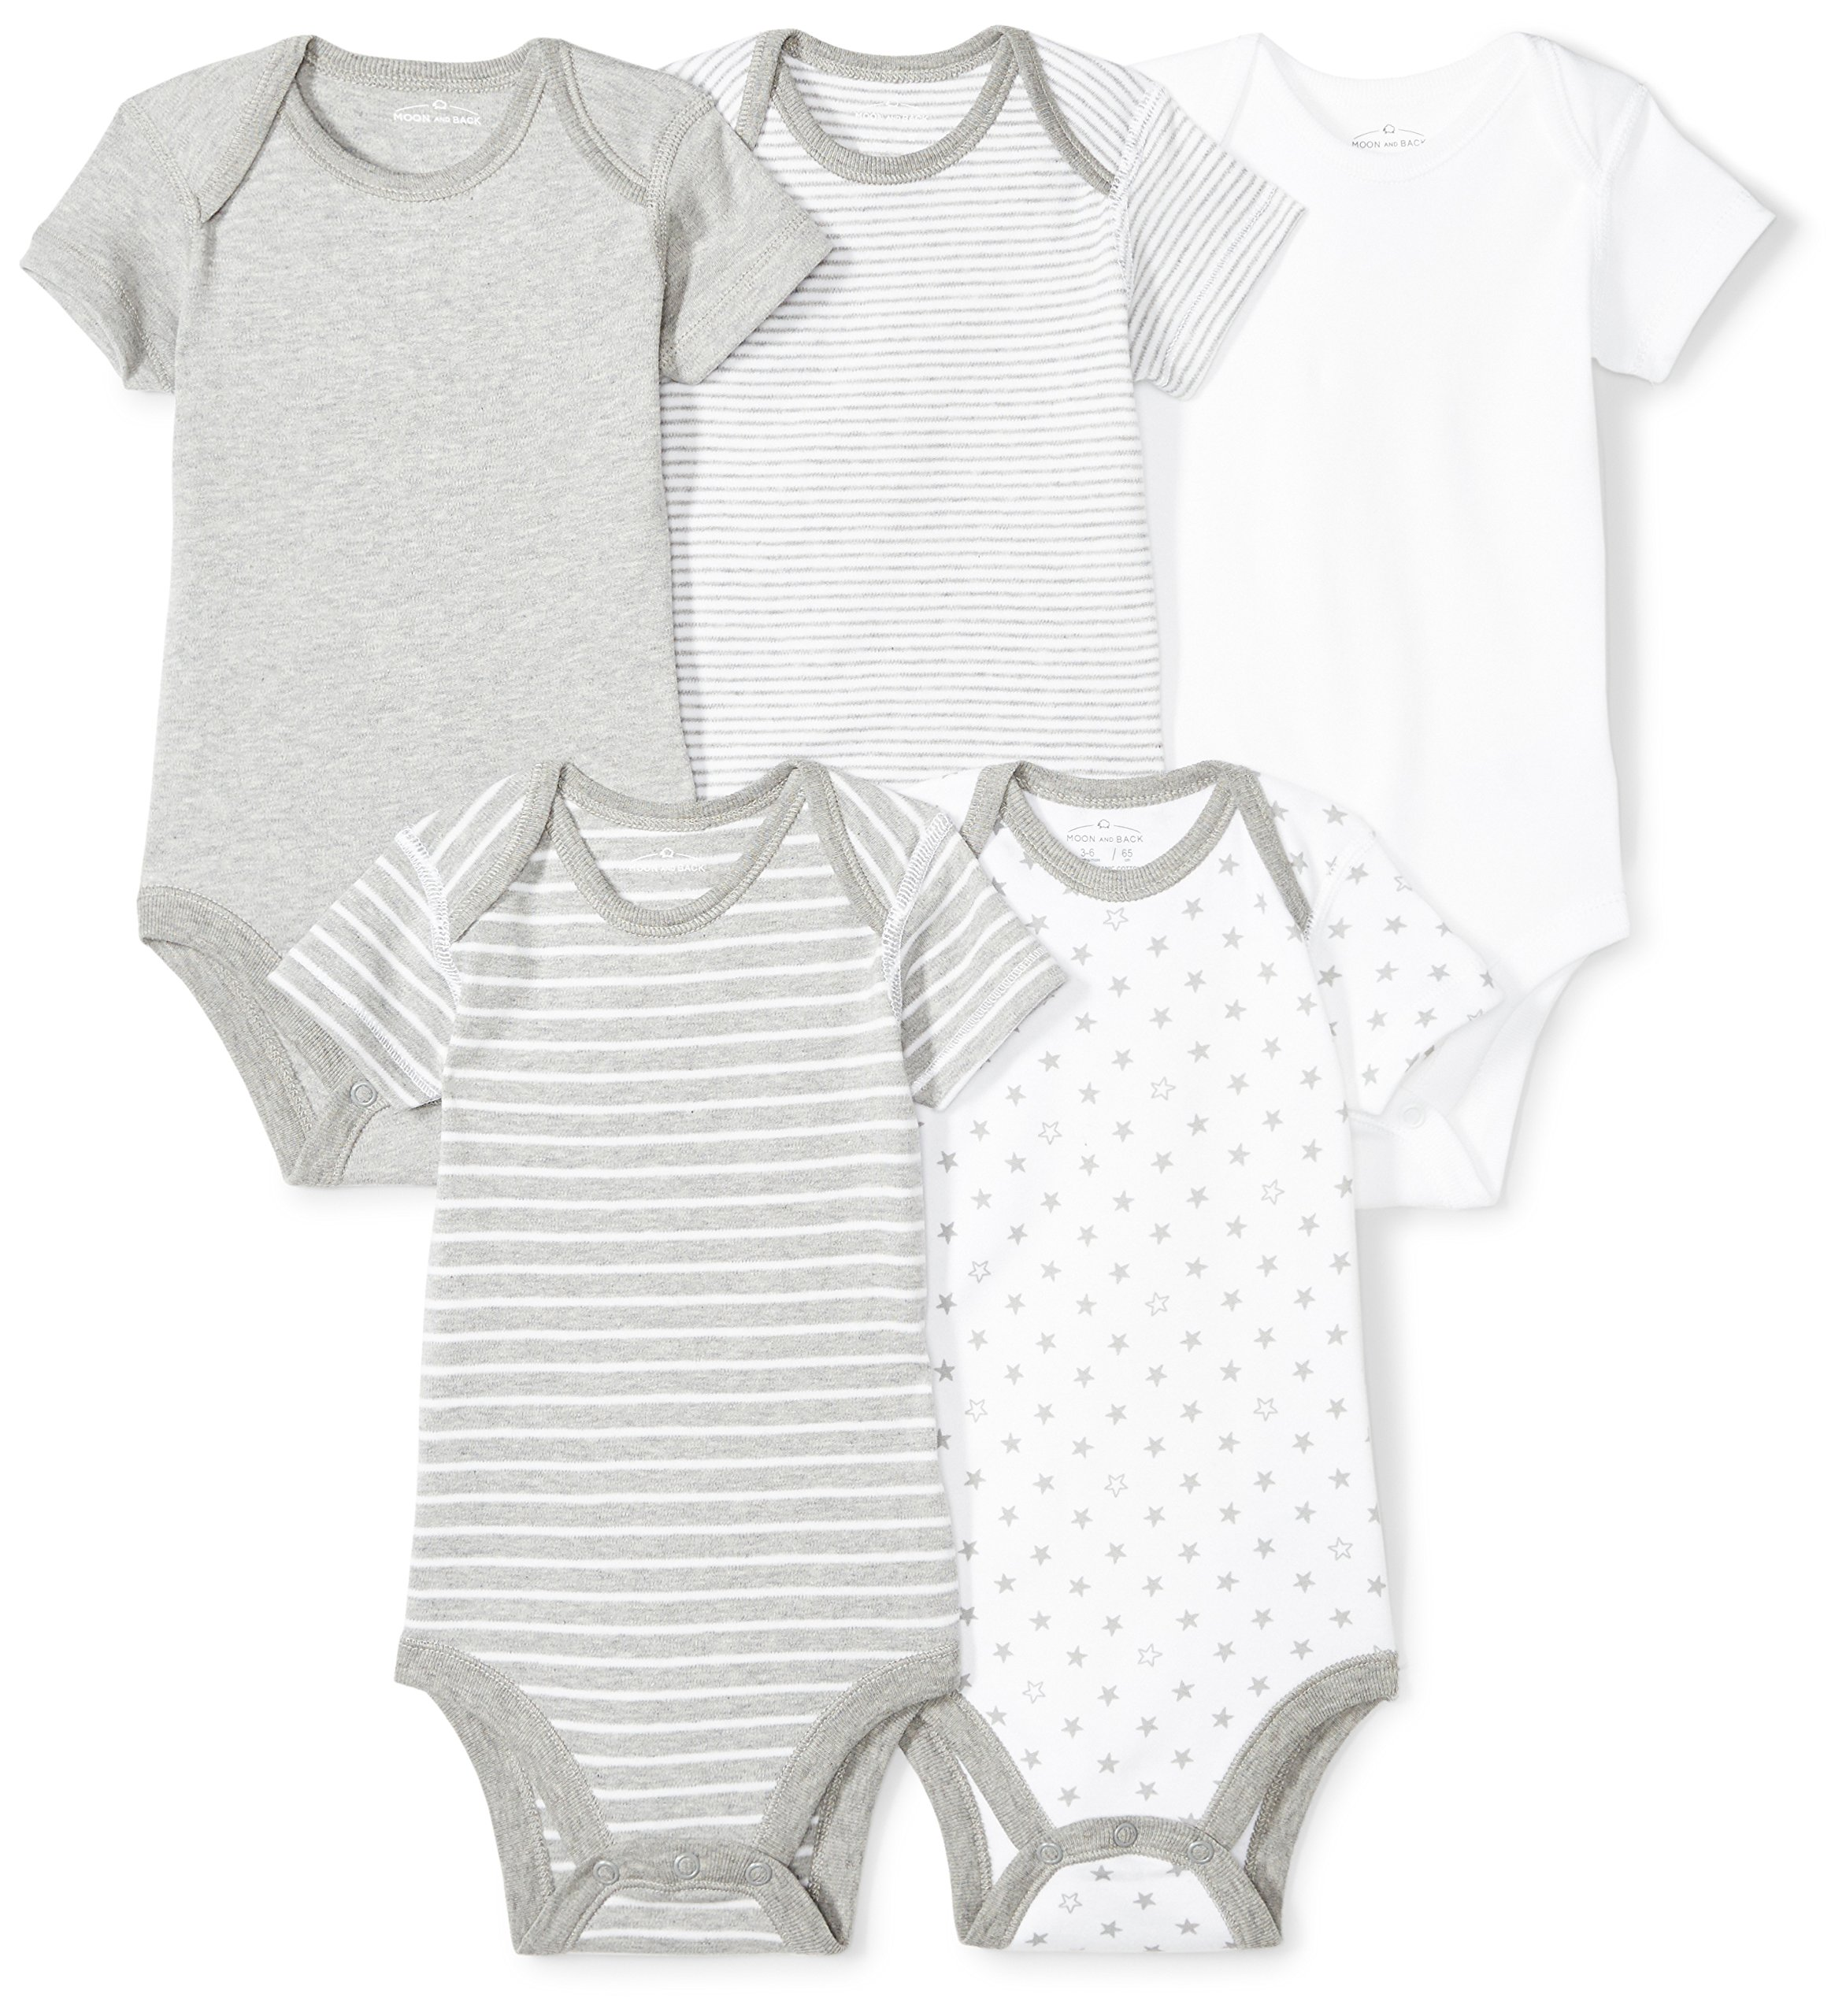 Moon and Back Baby Set of 5 Organic Short-Sleeve Bodysuits, Grey Heather, 3-6 Months